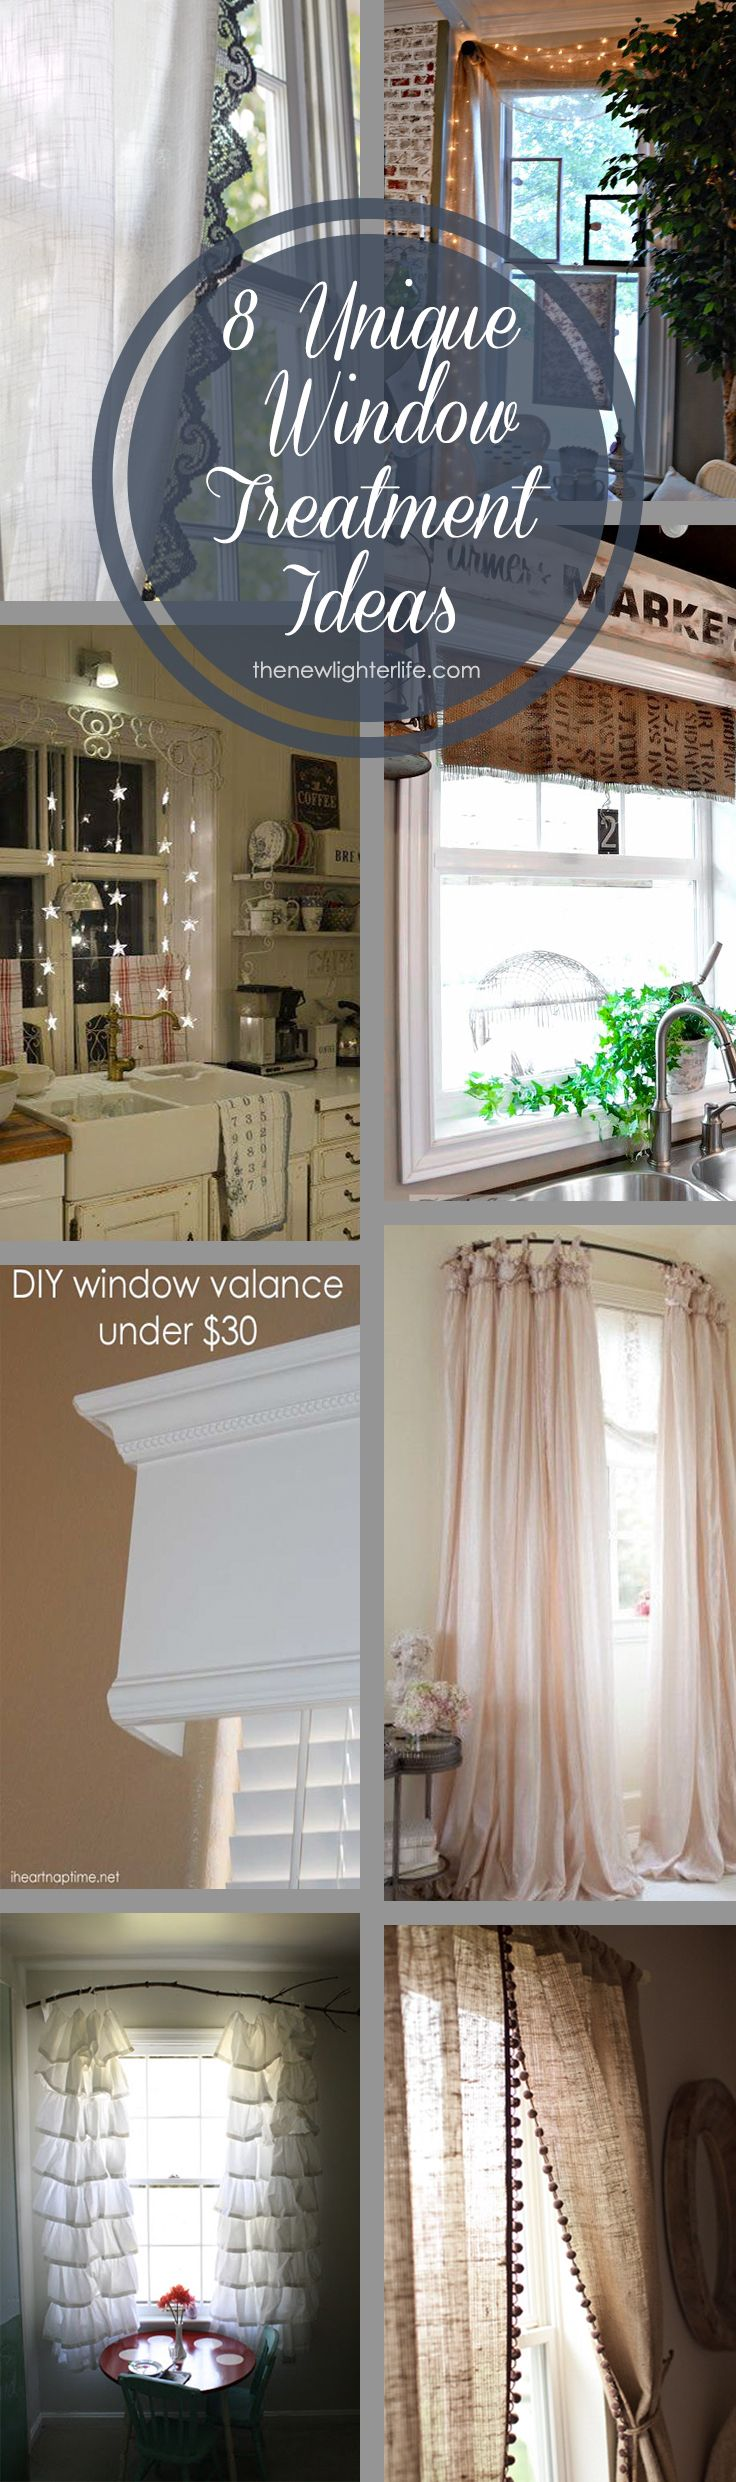 30 lovely kitchen curtain ideas home interior help - Best 25 Unique Window Treatments Ideas Only On Pinterest Vintage Window Treatments Rustic Window Treatments And Window Scroll